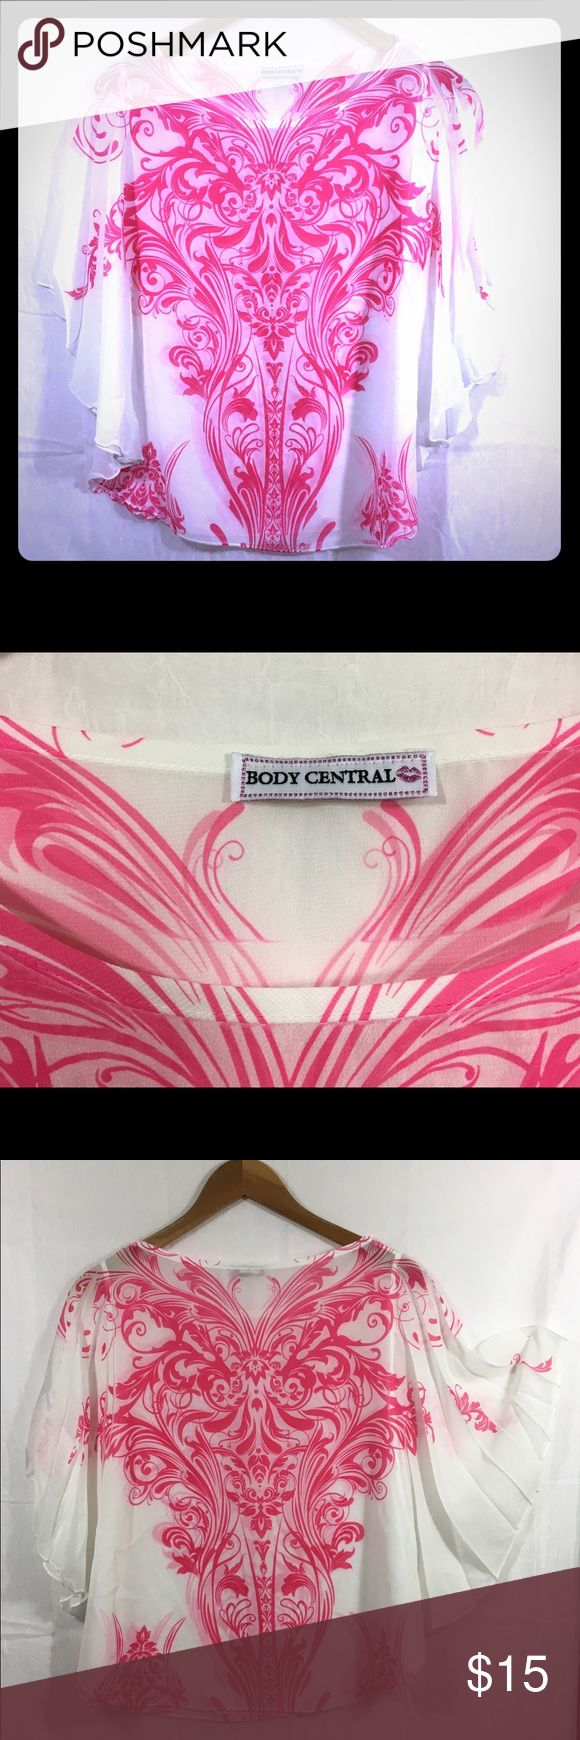 Lovely Sheer Pink & White Body Central Flowy Top Gorgeous hot pink and white top with butterfly sleeves from Body Central. Fabric is sheer and floaty. Buy 2 or more items from my closet and get 15% off total purchase! See an item you love but not keen on the price? Make me a reasonable offer:) Body Central Tops Blouses